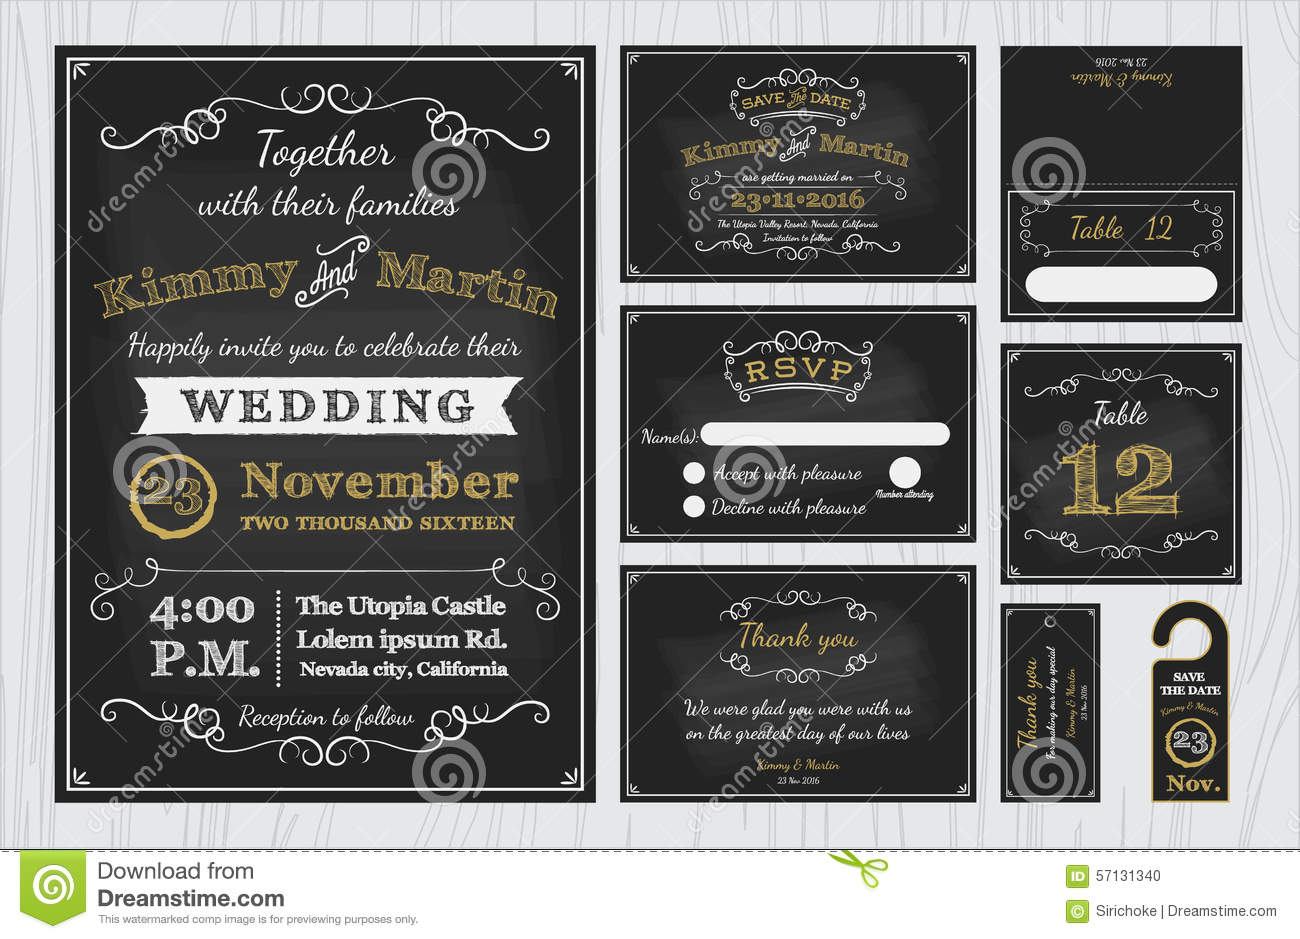 hobby lobby wedding invitations Wedding shadow box 30 after coupon at Hobby Lobby What s inside my bouquet